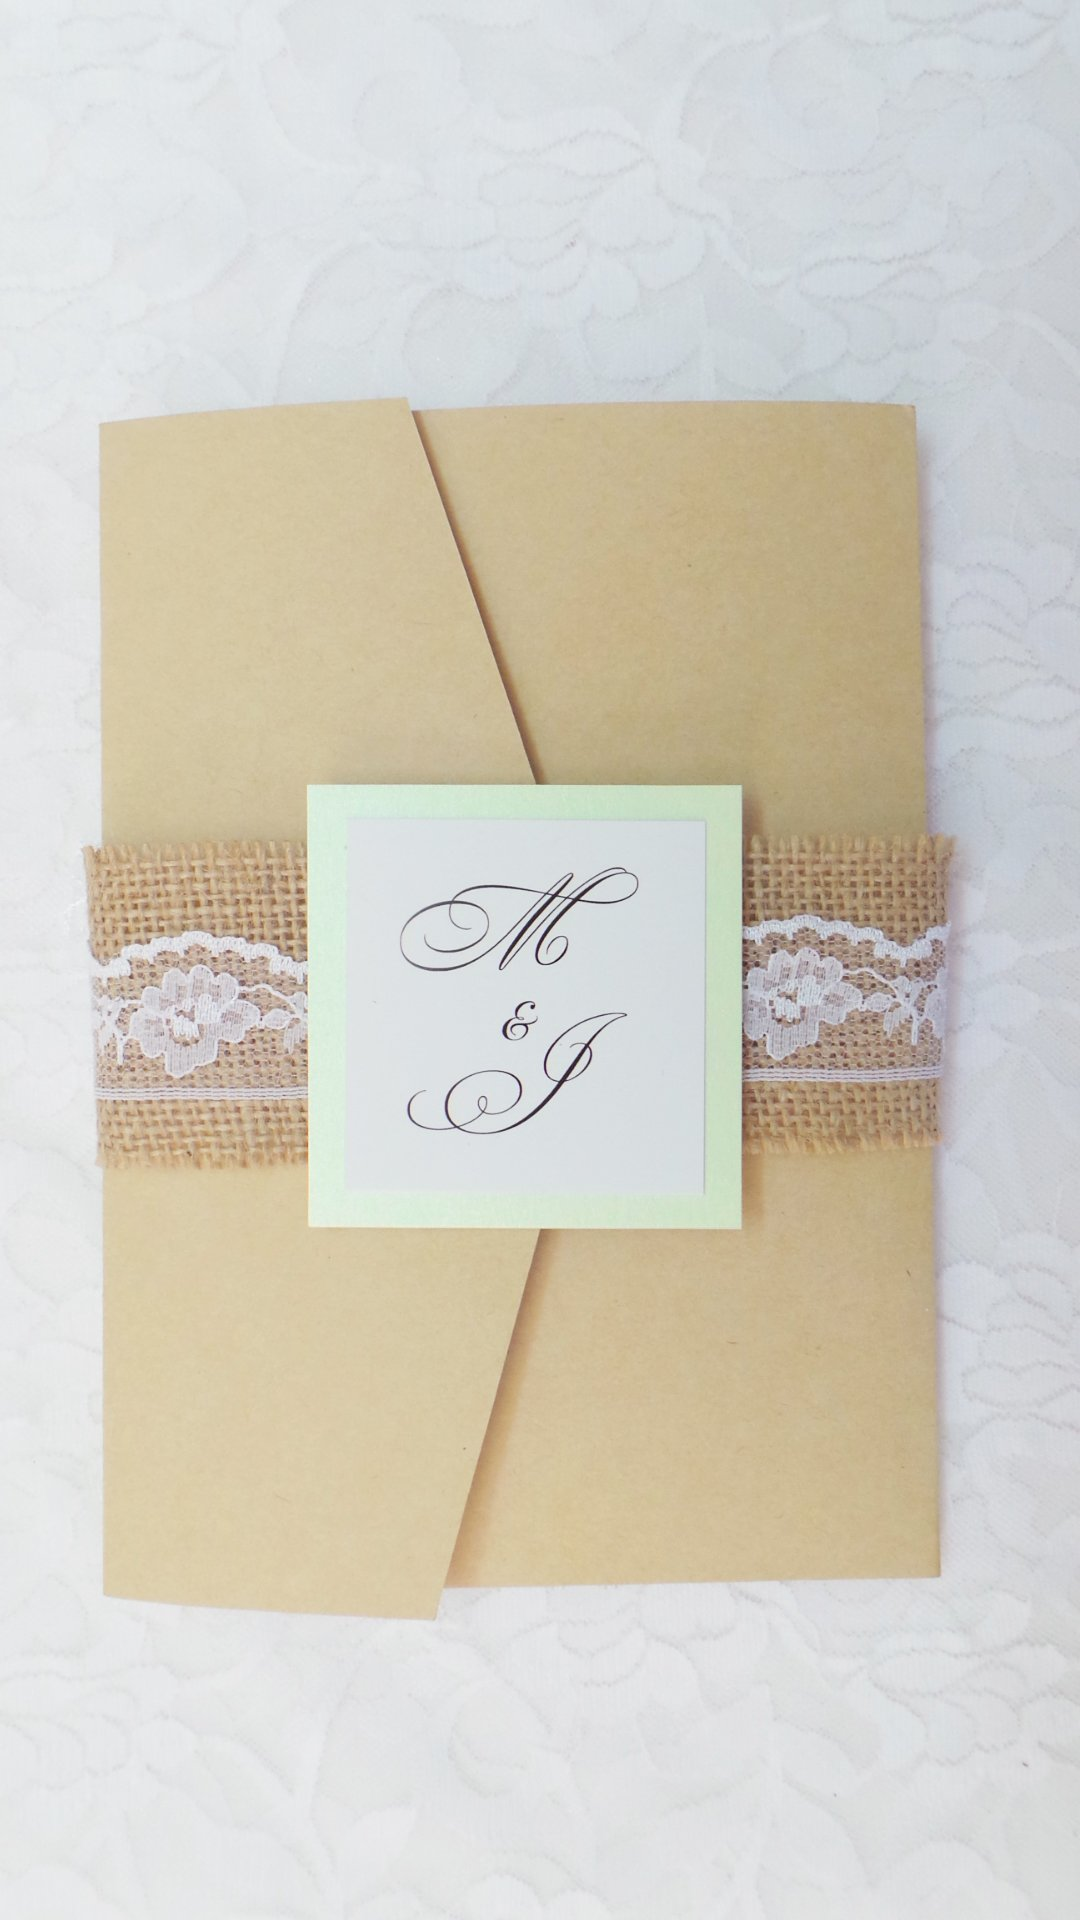 100 Wedding Invitations Rustic Mint Green Craft Pocket Fold Country Lace Burlap + Envelopes + Response Gift Registry Accommodation Directions Cards Set